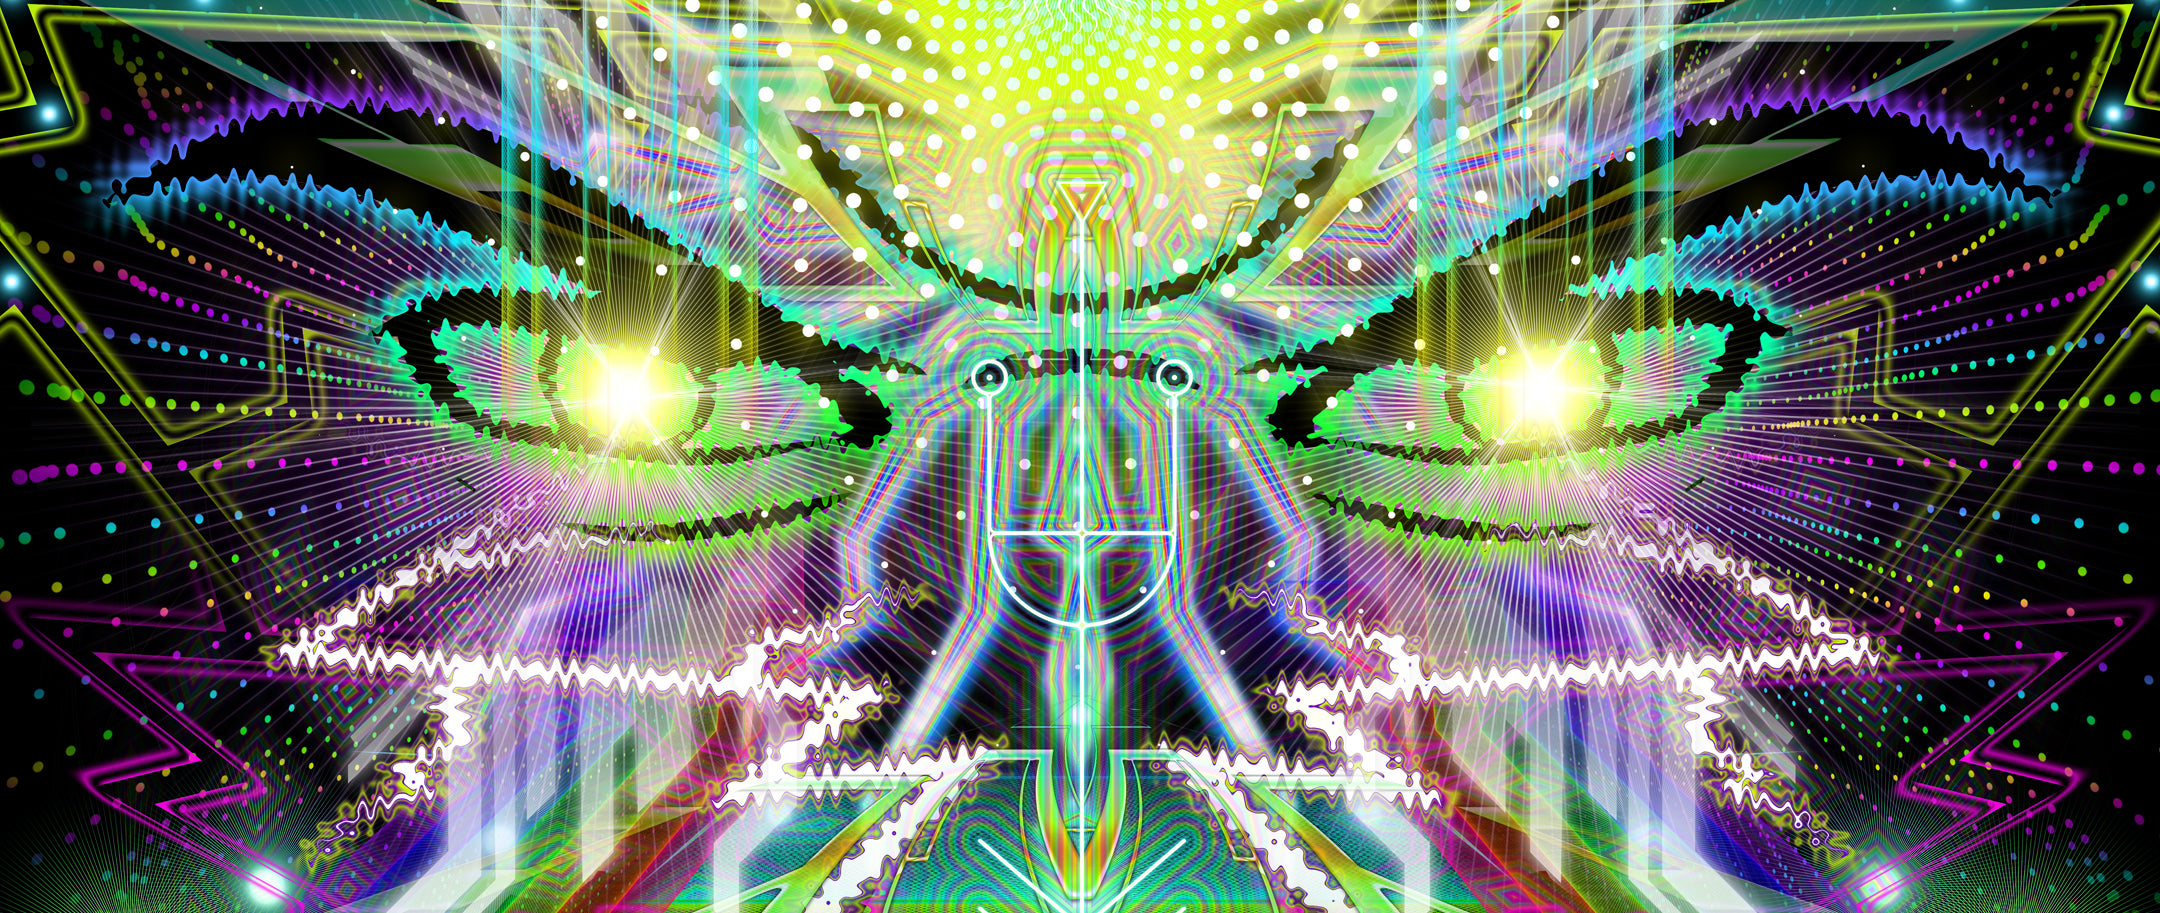 Psychodelic: Psychedelic Art inspired by a Powerful Vibrational Entity